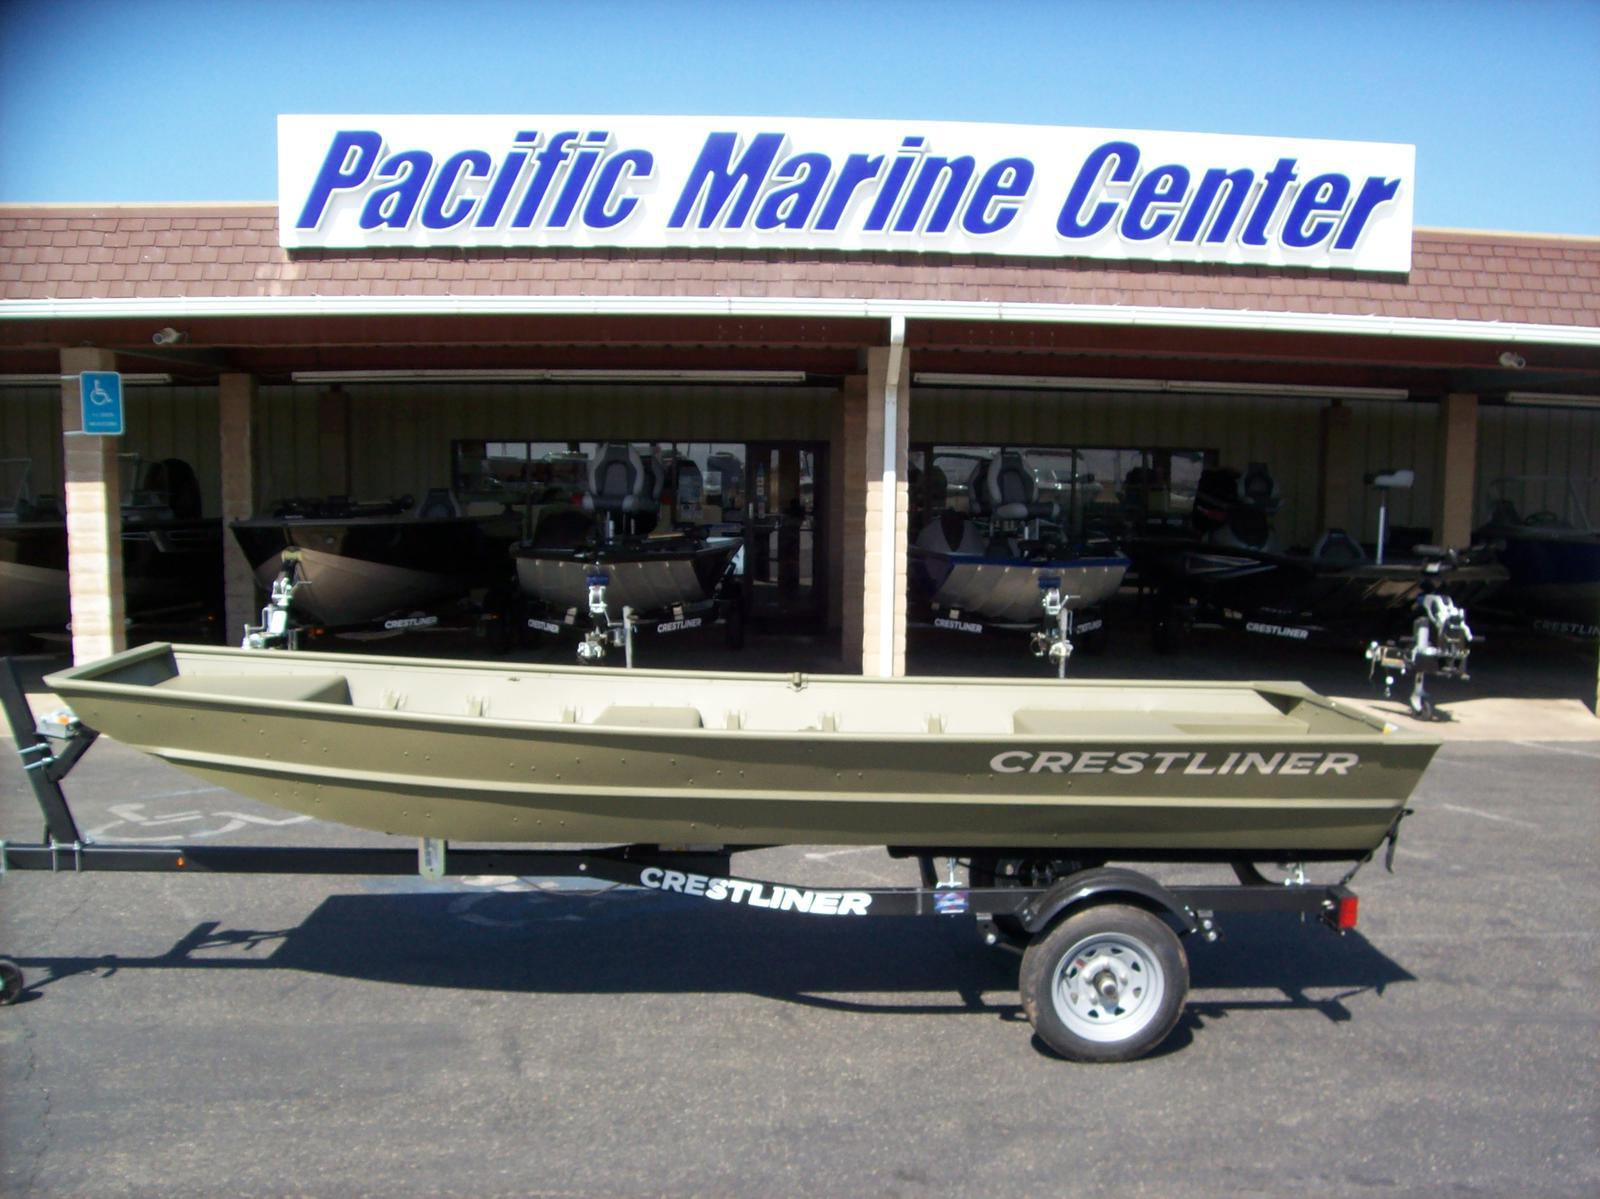 2016 Crestliner 1436 Jon for sale in Madera, CA | Pacific Marine Center  (559) 432-2277